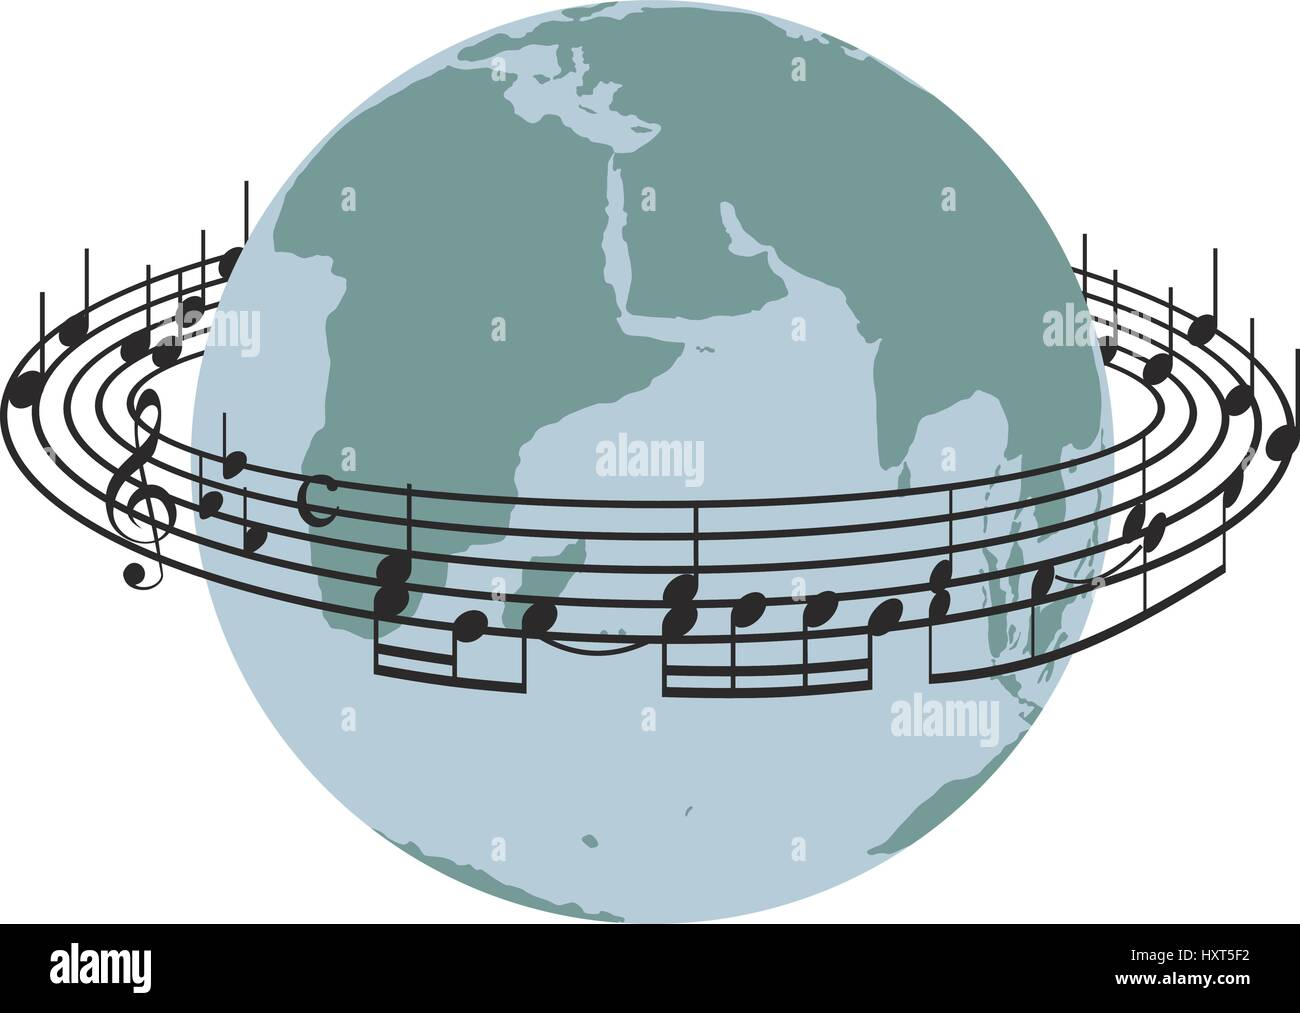 Stave around the planet earth - Stock Image